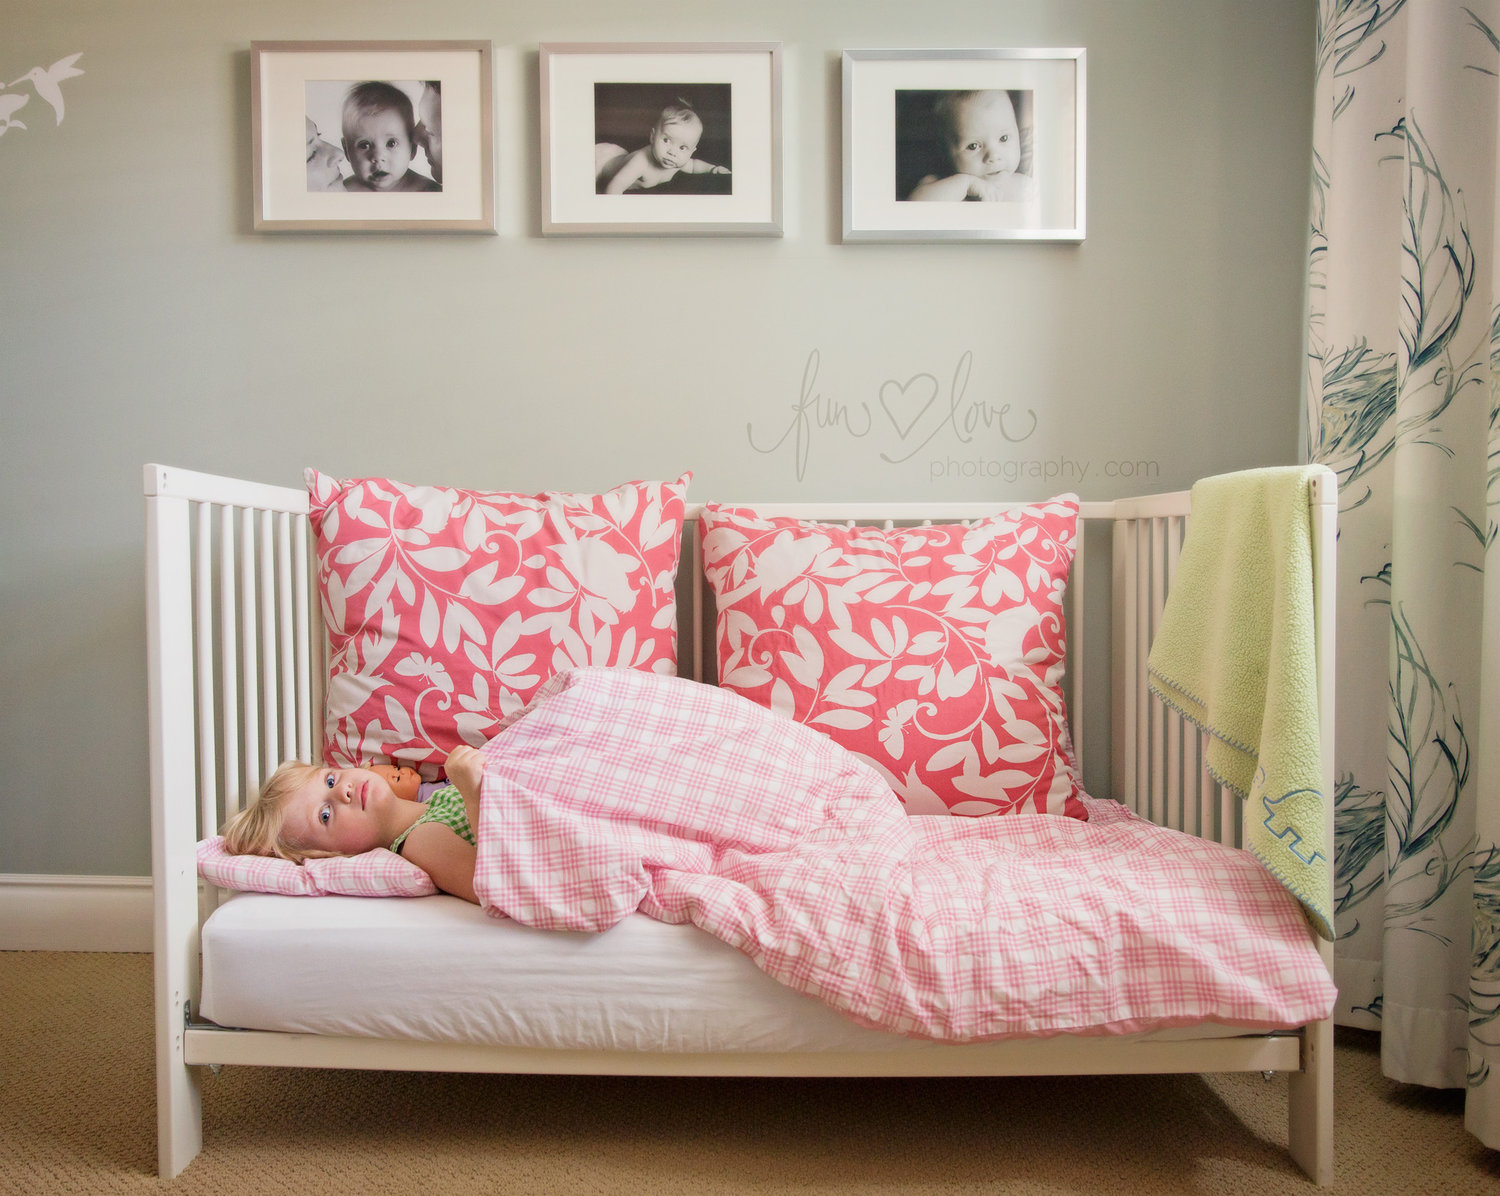 Girl in crib bed with her baby pictures on the wall